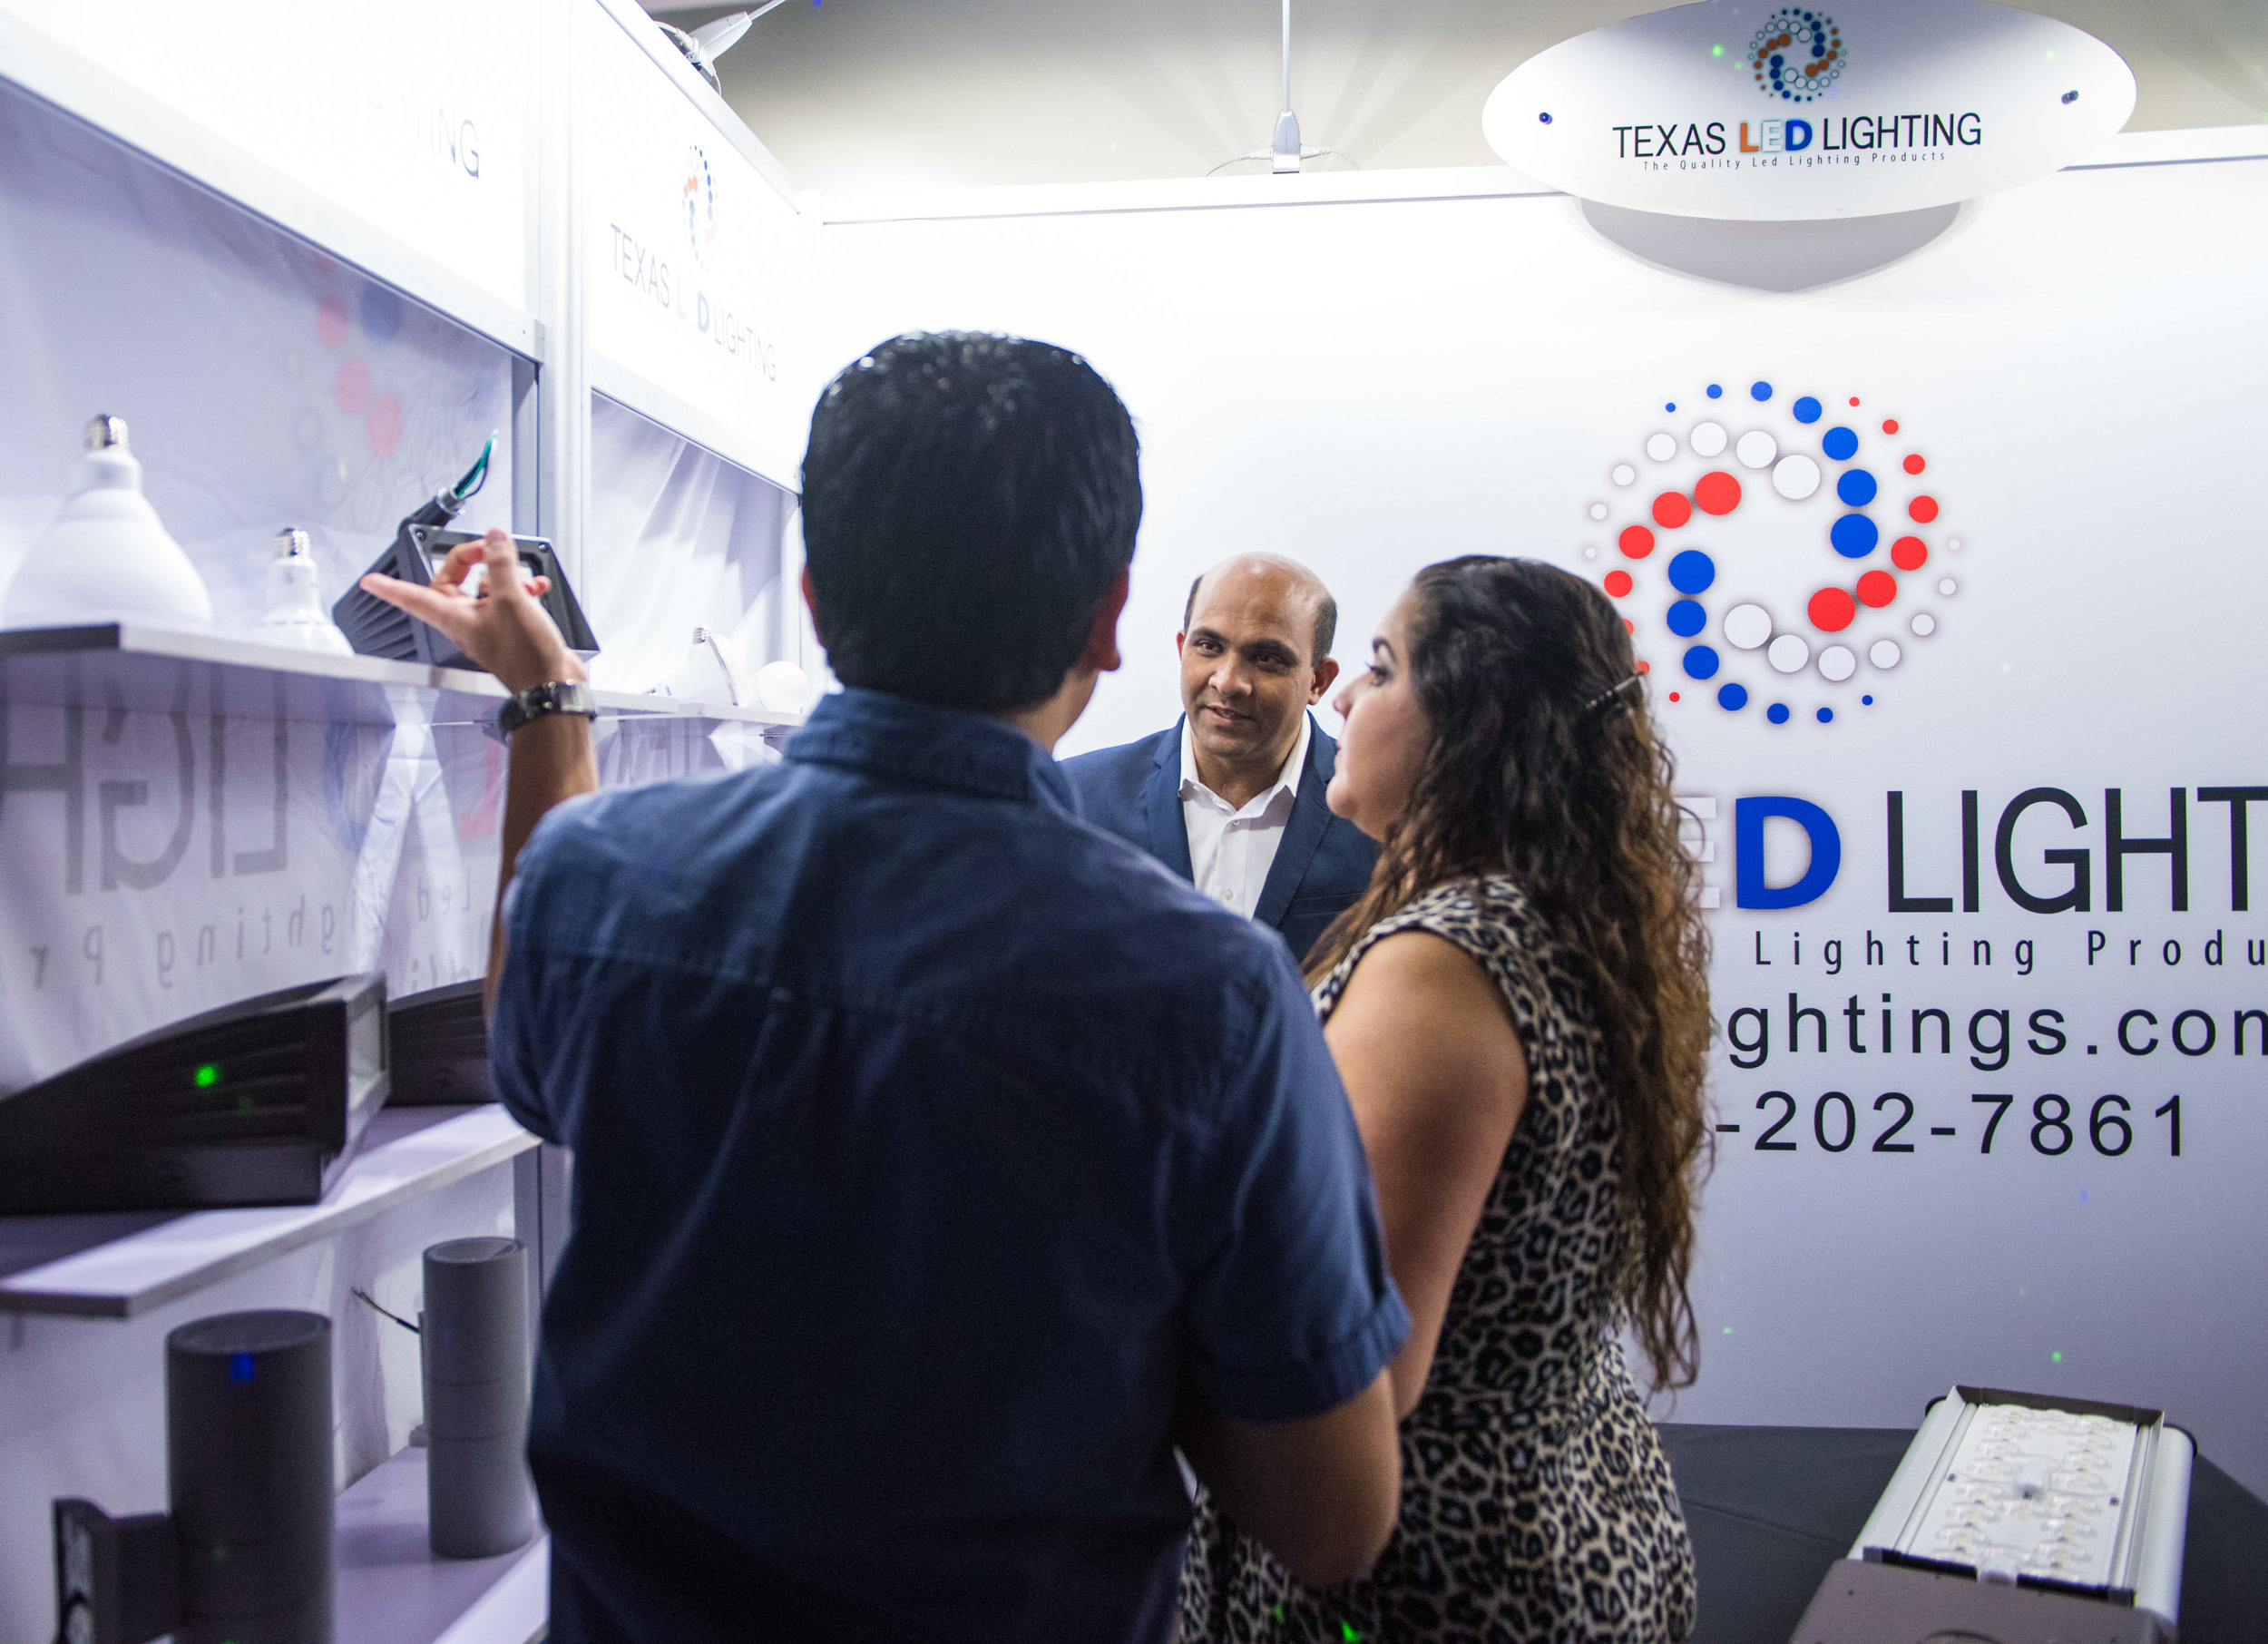 dbh-ESC_summerexhibition-090917-16.jpg